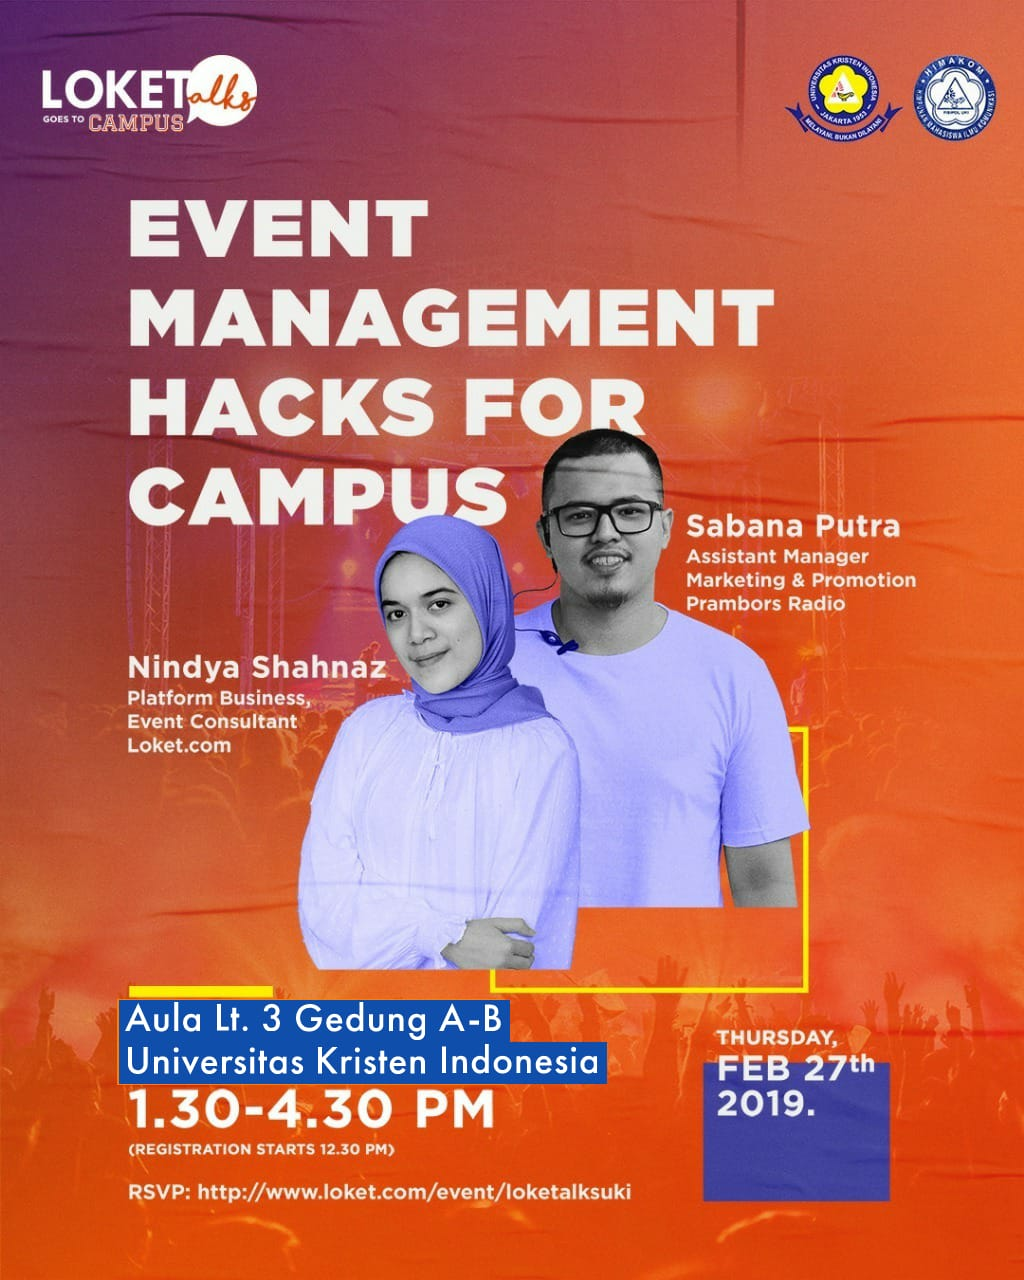 Event Management Hacks For Campus